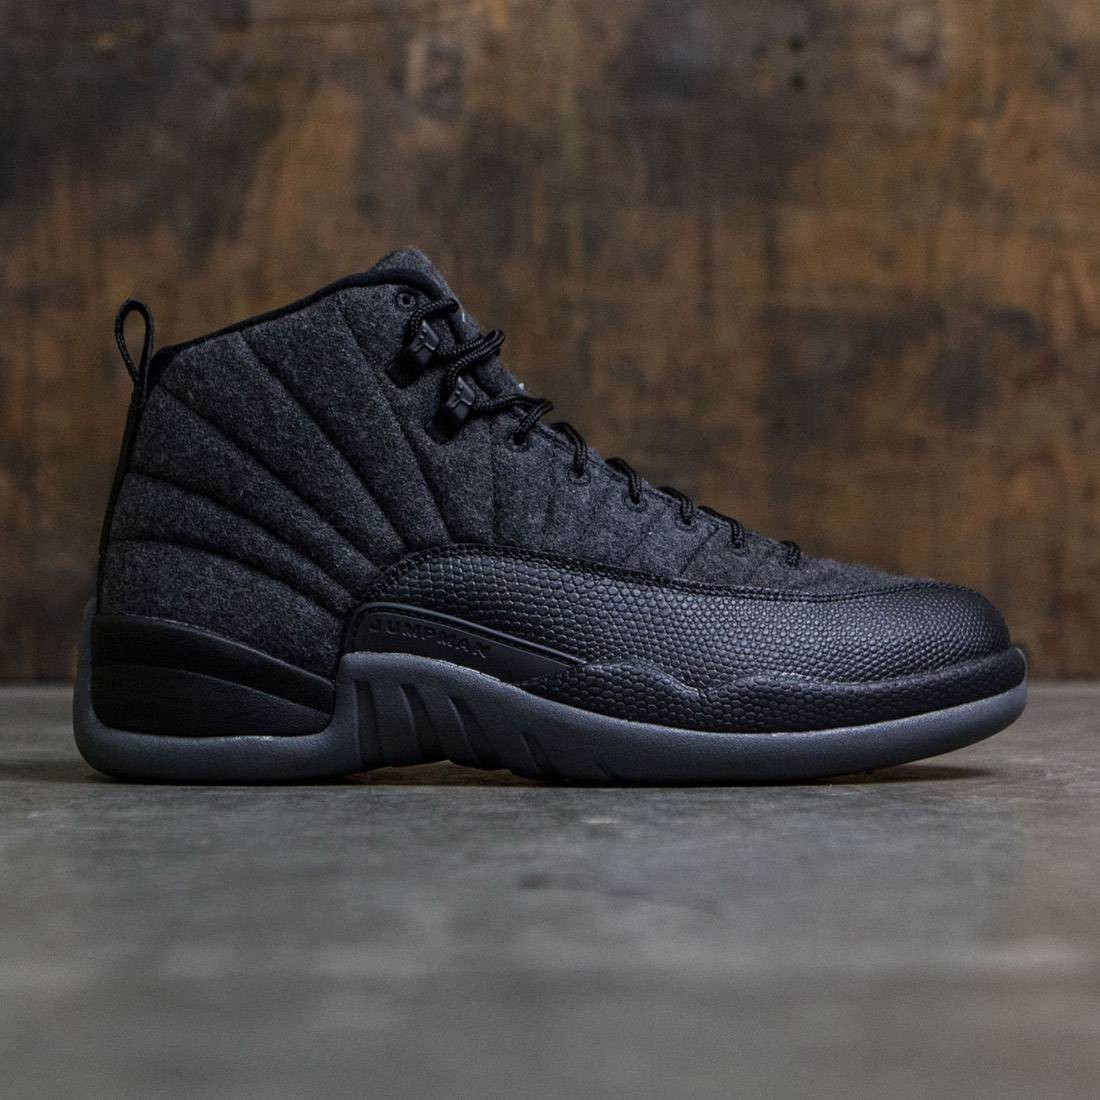 best service ac103 1e701 Jordan Men Air Jordan 12 Retro Wool (dark grey   metallic silver-black)